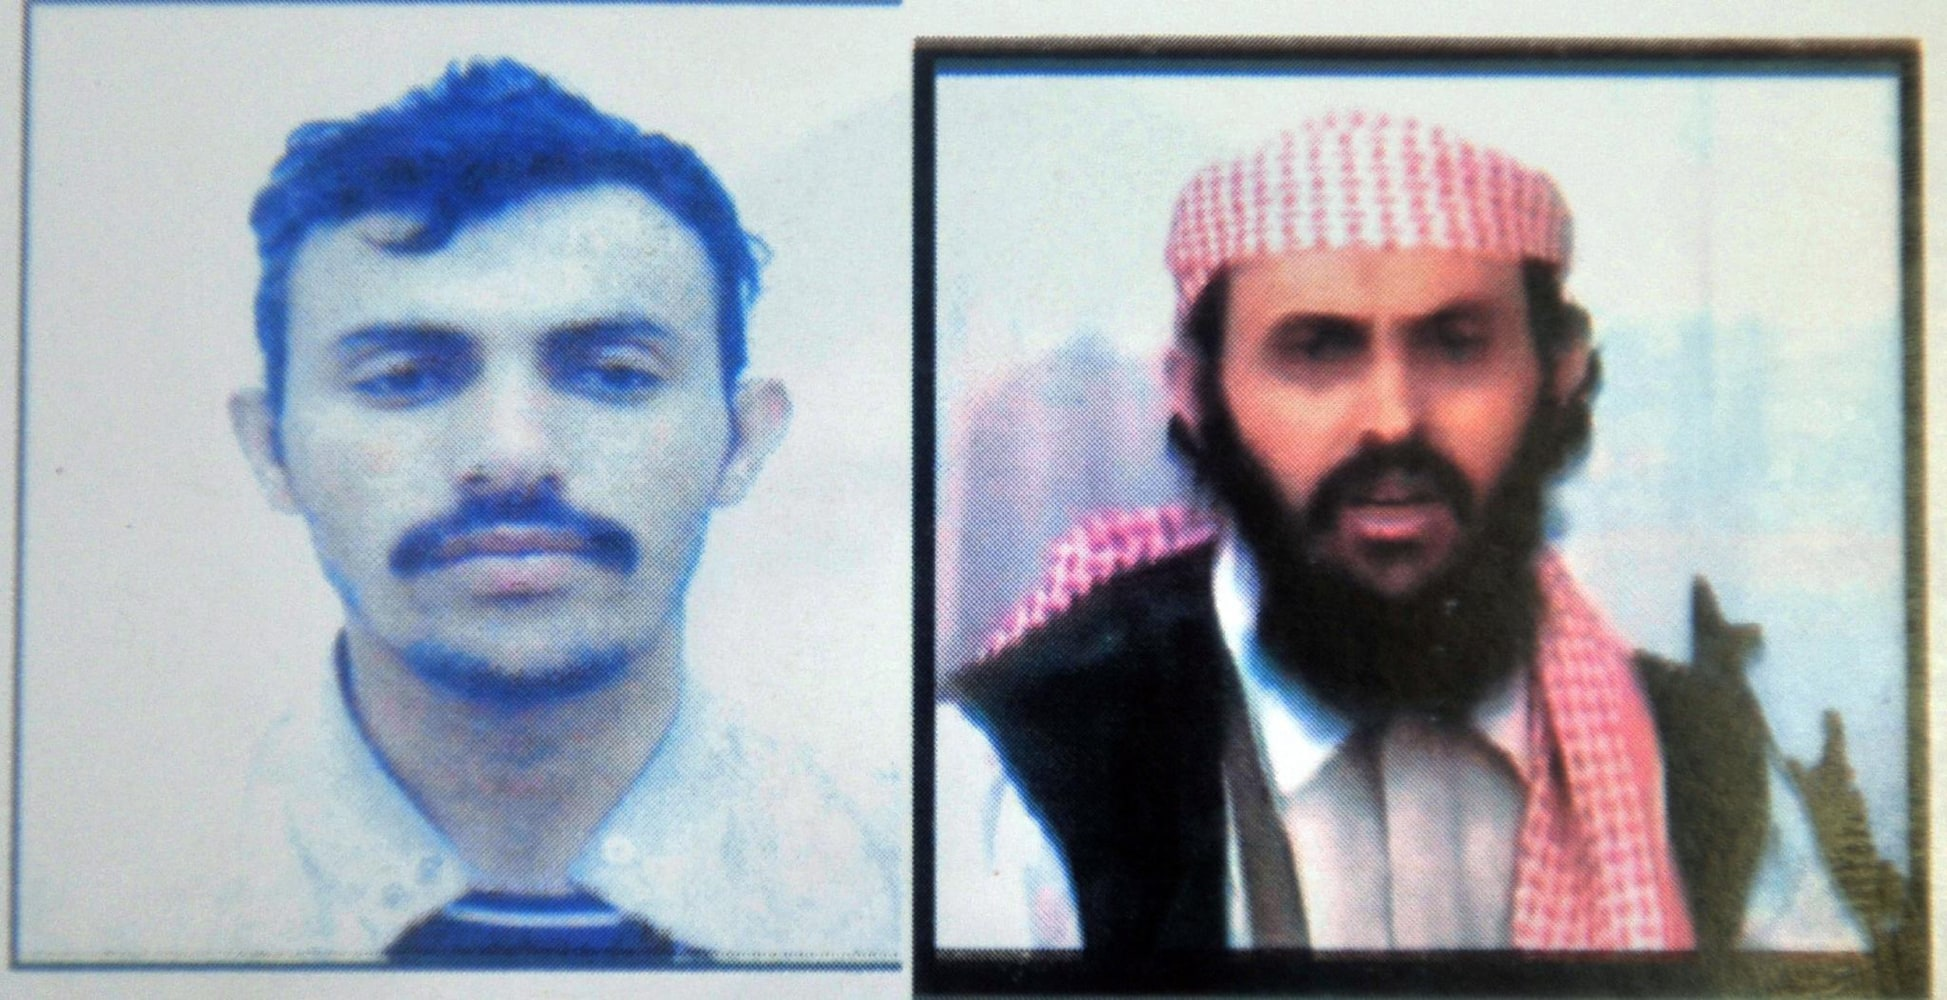 USA  raid in Yemen targeted senior al-Qaeda leader Qasim al-Raymi